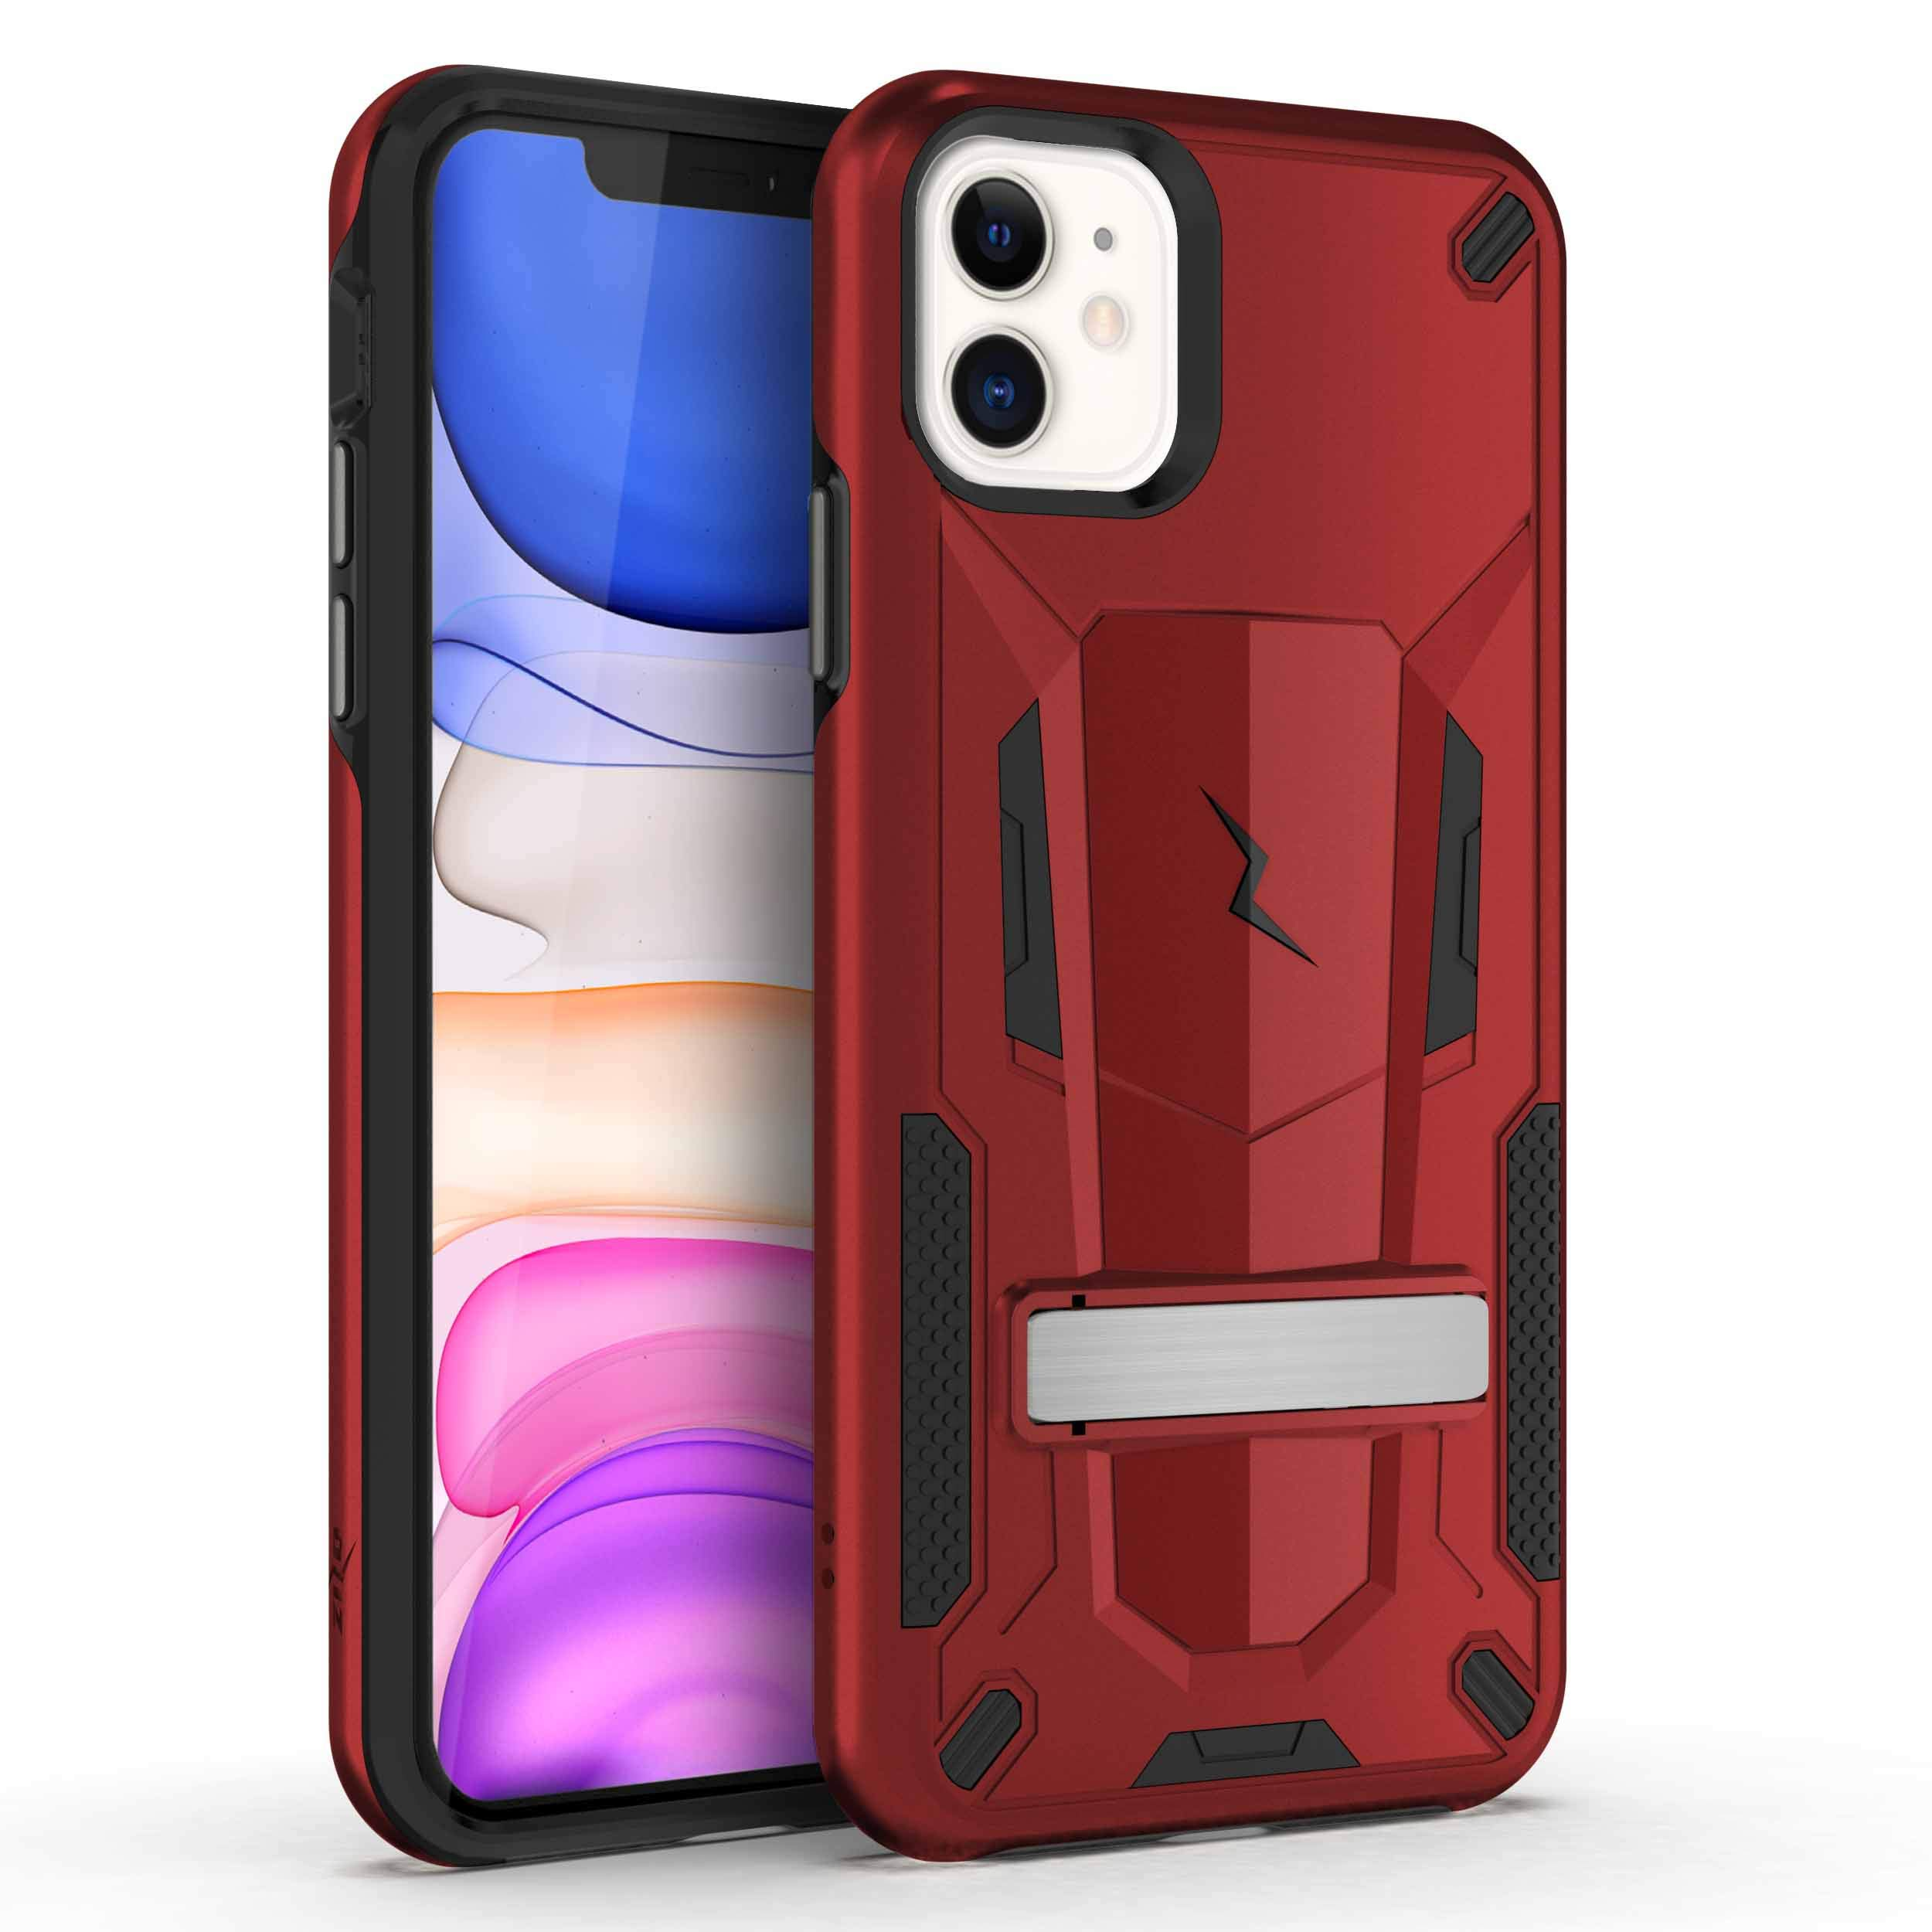 ZIZO Transform Series iPhone 11 Case - Dual-Layer Protection w/Kickstand, Military Grade Drop Protection - Red